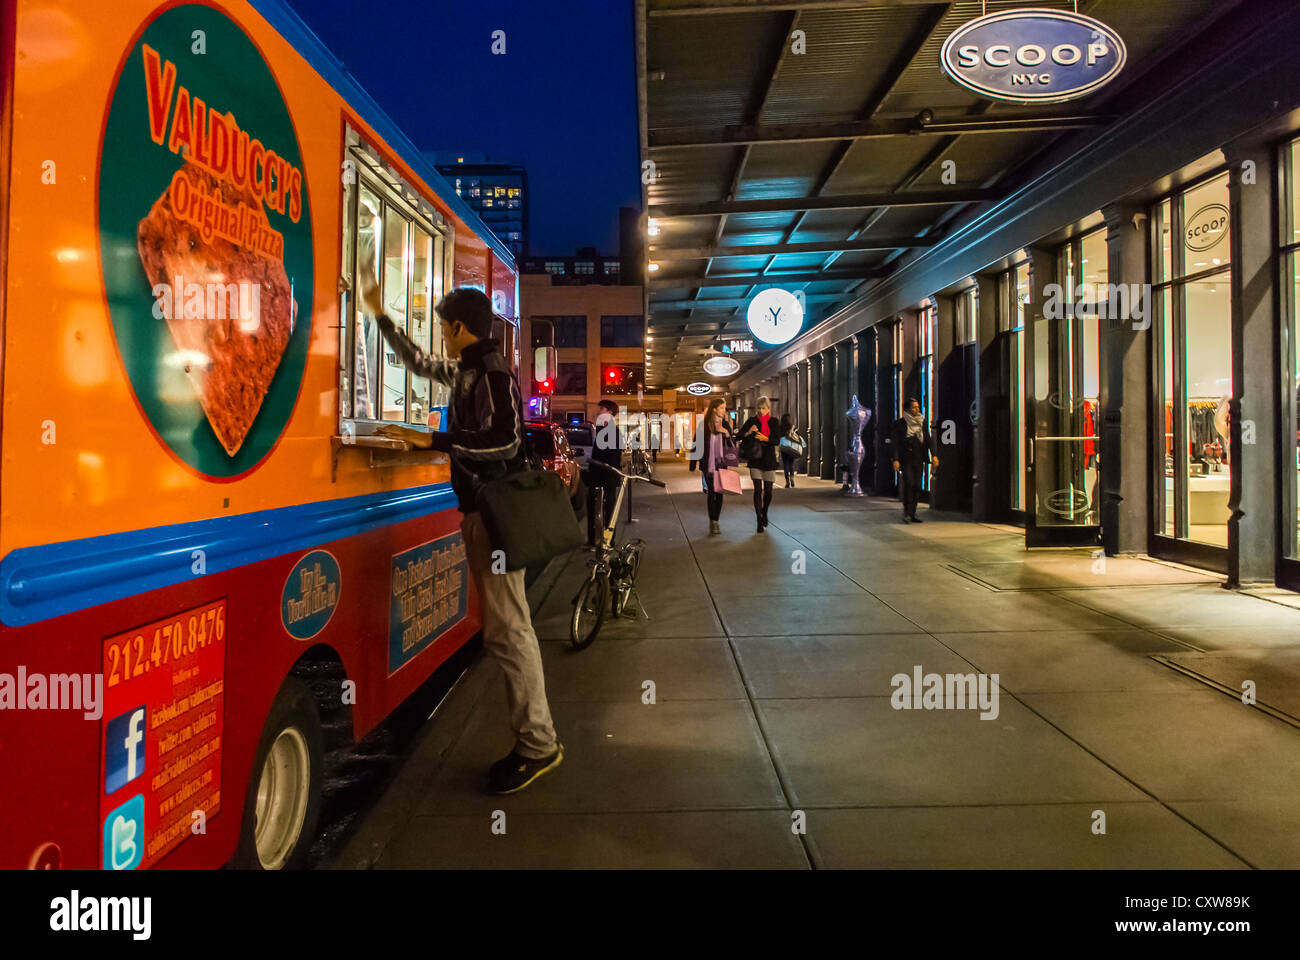 """New York City, NY, USA, Street Scenes, Man Cleaning Food Truck """"Valducci"""" at Night, in the Meatpacking District, Stock Photo"""